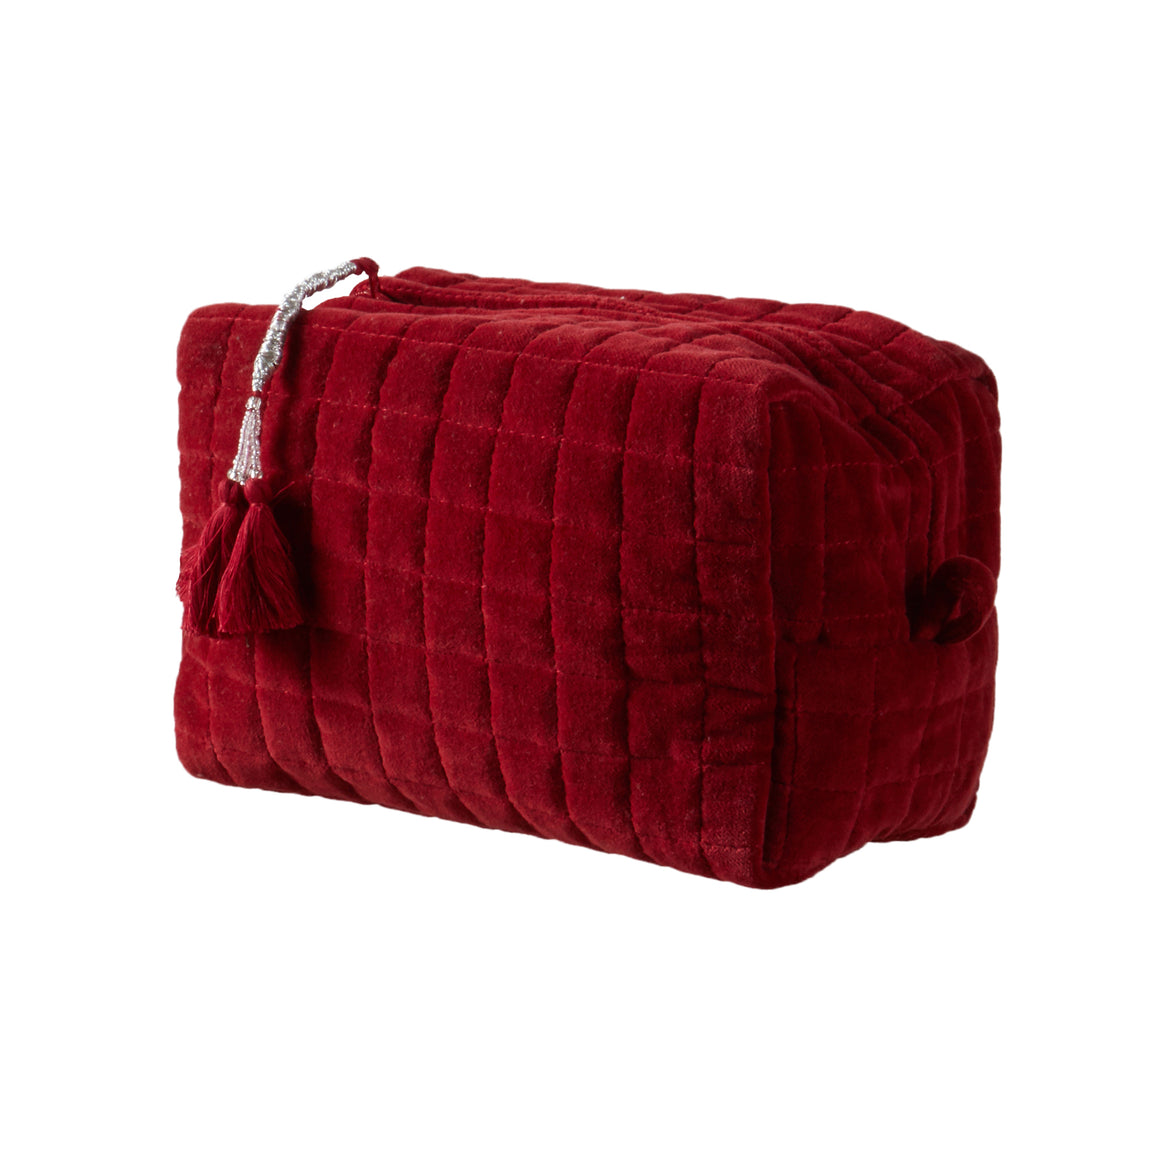 QUILTED VELVET COSMETIC BAG RUBY RED M - McHugh Lifestyle BOHEMIAN GLAMOUR